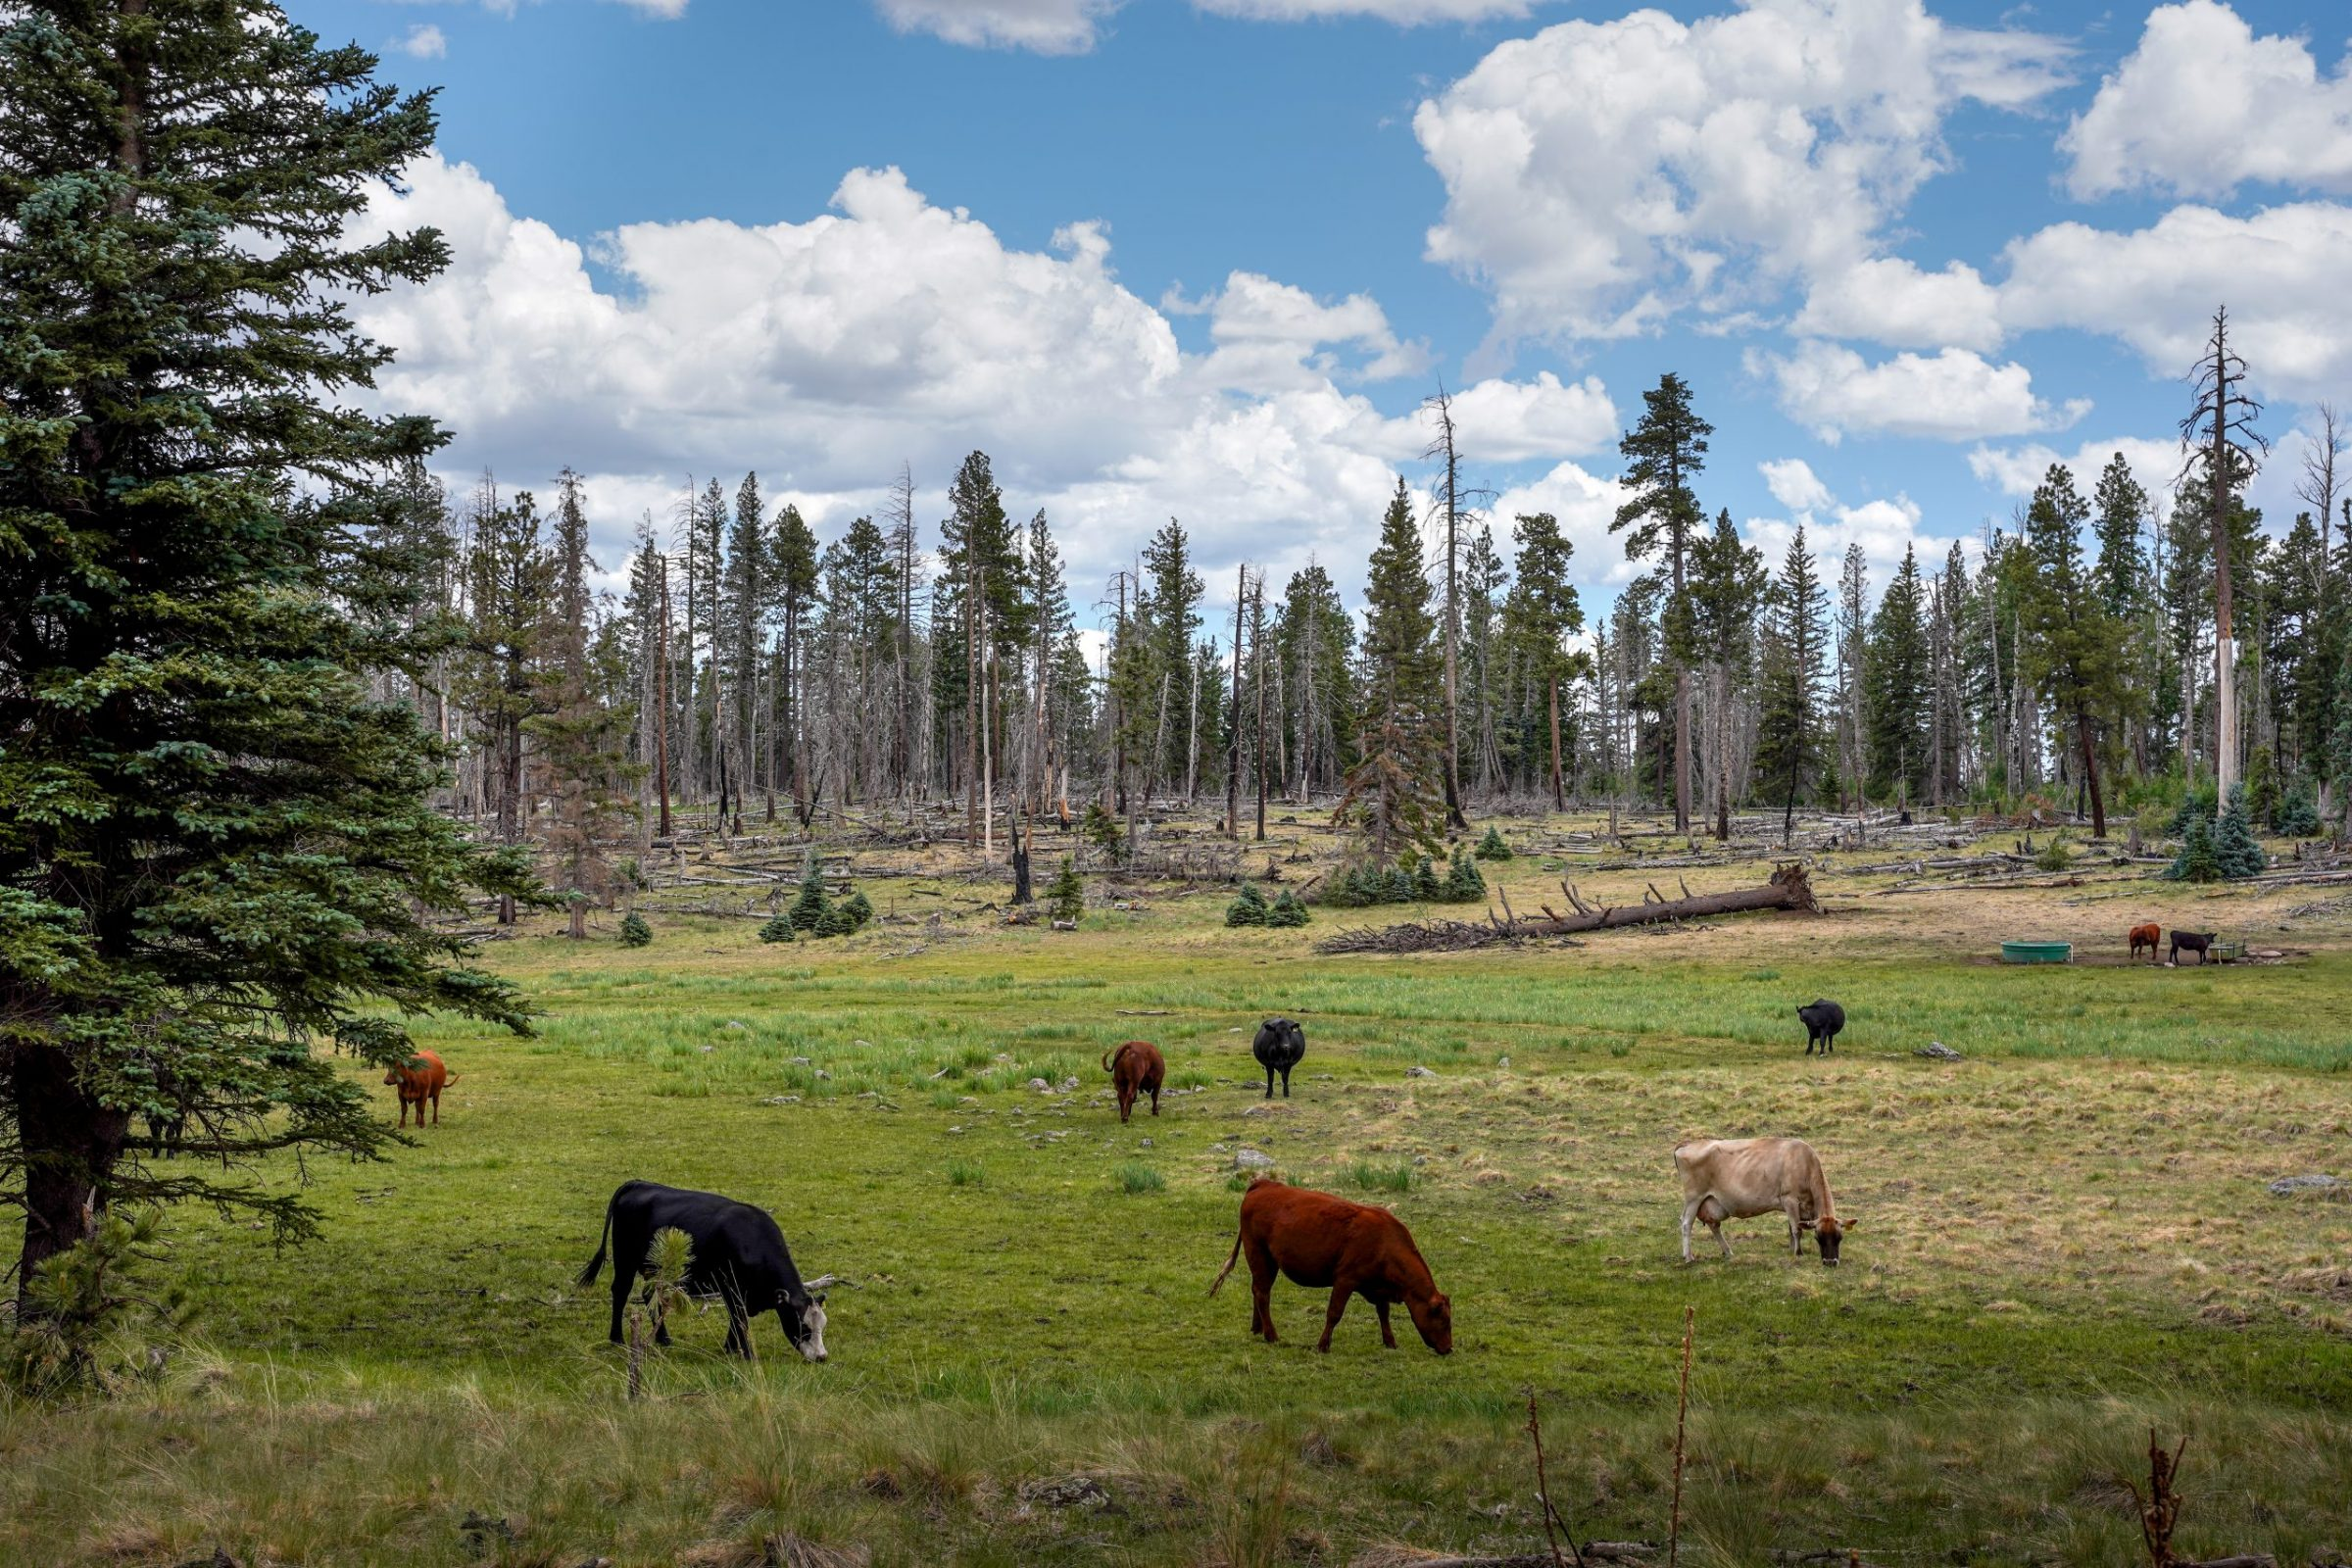 A herd of cattle graze in a forested area. Utilizing non-lethal strategies for protecting cattle, such as employing range riders to monitor the locations of collared wolves, helps to reduce livestock predation and conflict between humans and wolf recovery efforts. Photograph by April Reese